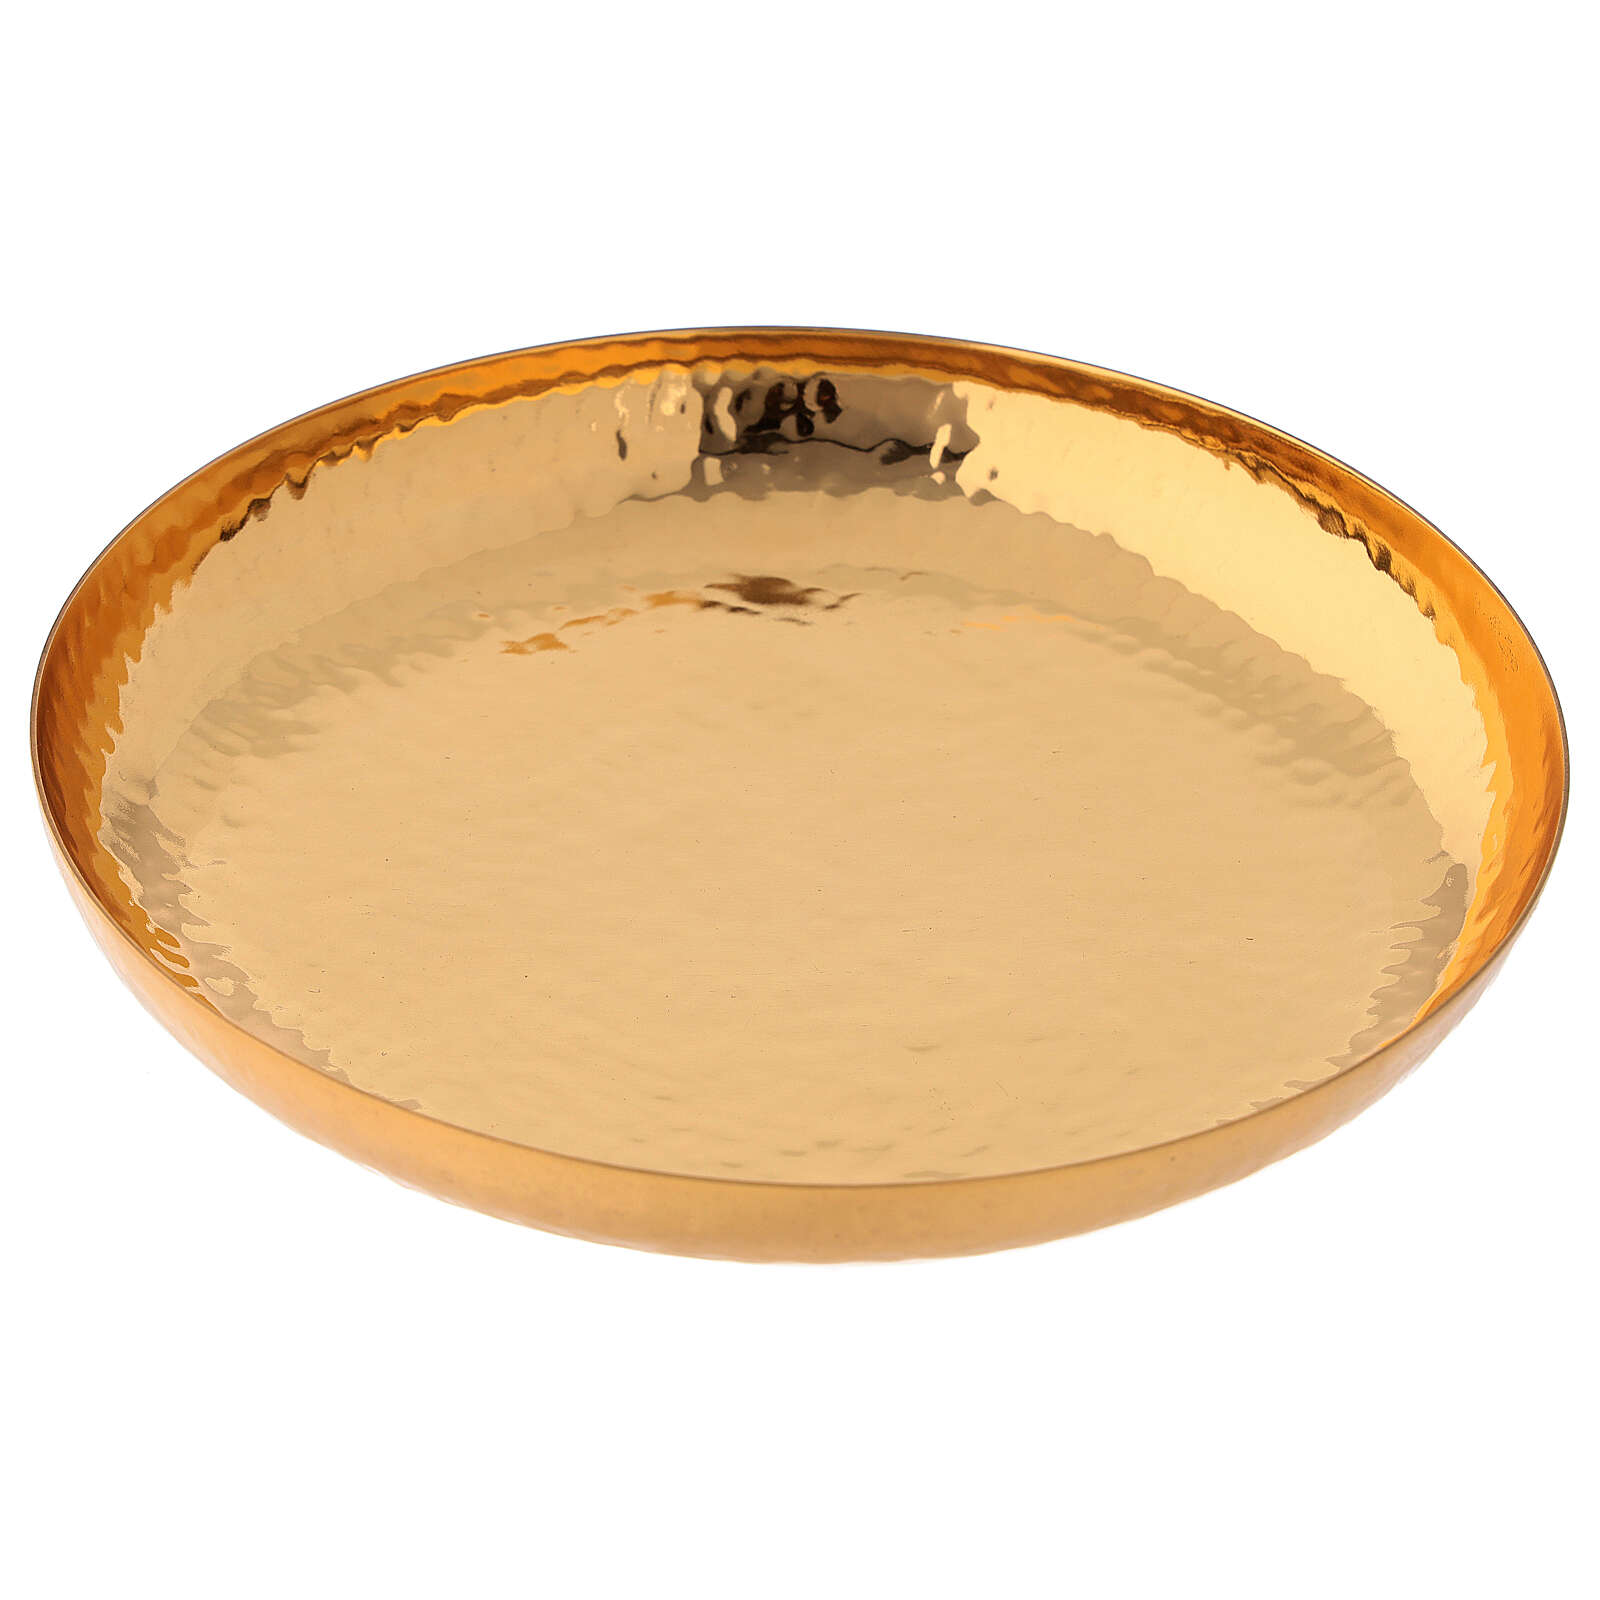 Paten in 24 carat gilded brass chiseled by hand 4